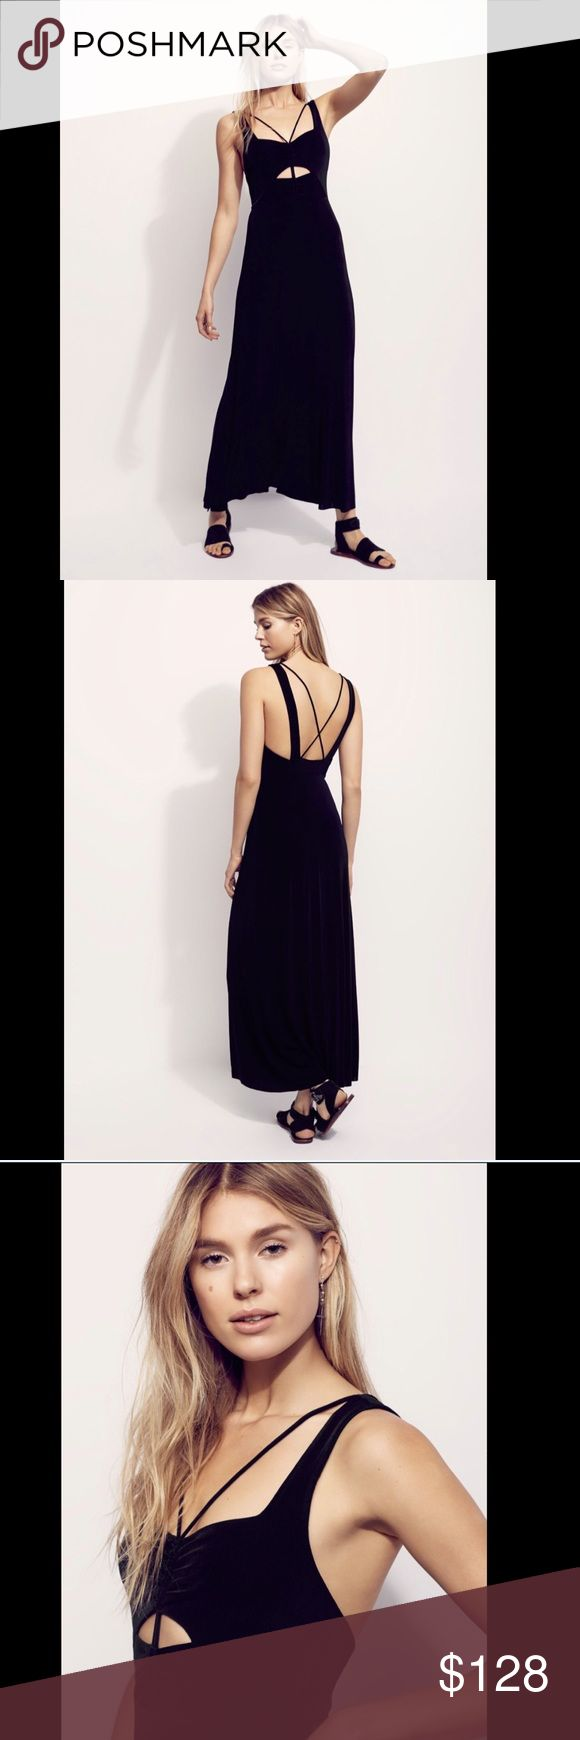 "Free People Black Slinky Knit Body CutOut  Dress L Free People Black Slinky Knit Body Skimming Cut Out Stretch Maxi Dress retro inspired slinky body skimming stretch ribbed fabric   maxi features a cutout at the bust with adjustable smocked tie New Without Tags  *  Size:  Medium Retail Price:  $148.00  * there is a line on the tag to prevent store return MM  32"" around bust relaxed 30"" around high waist relaxed 55"" long Free People Dresses Maxi"